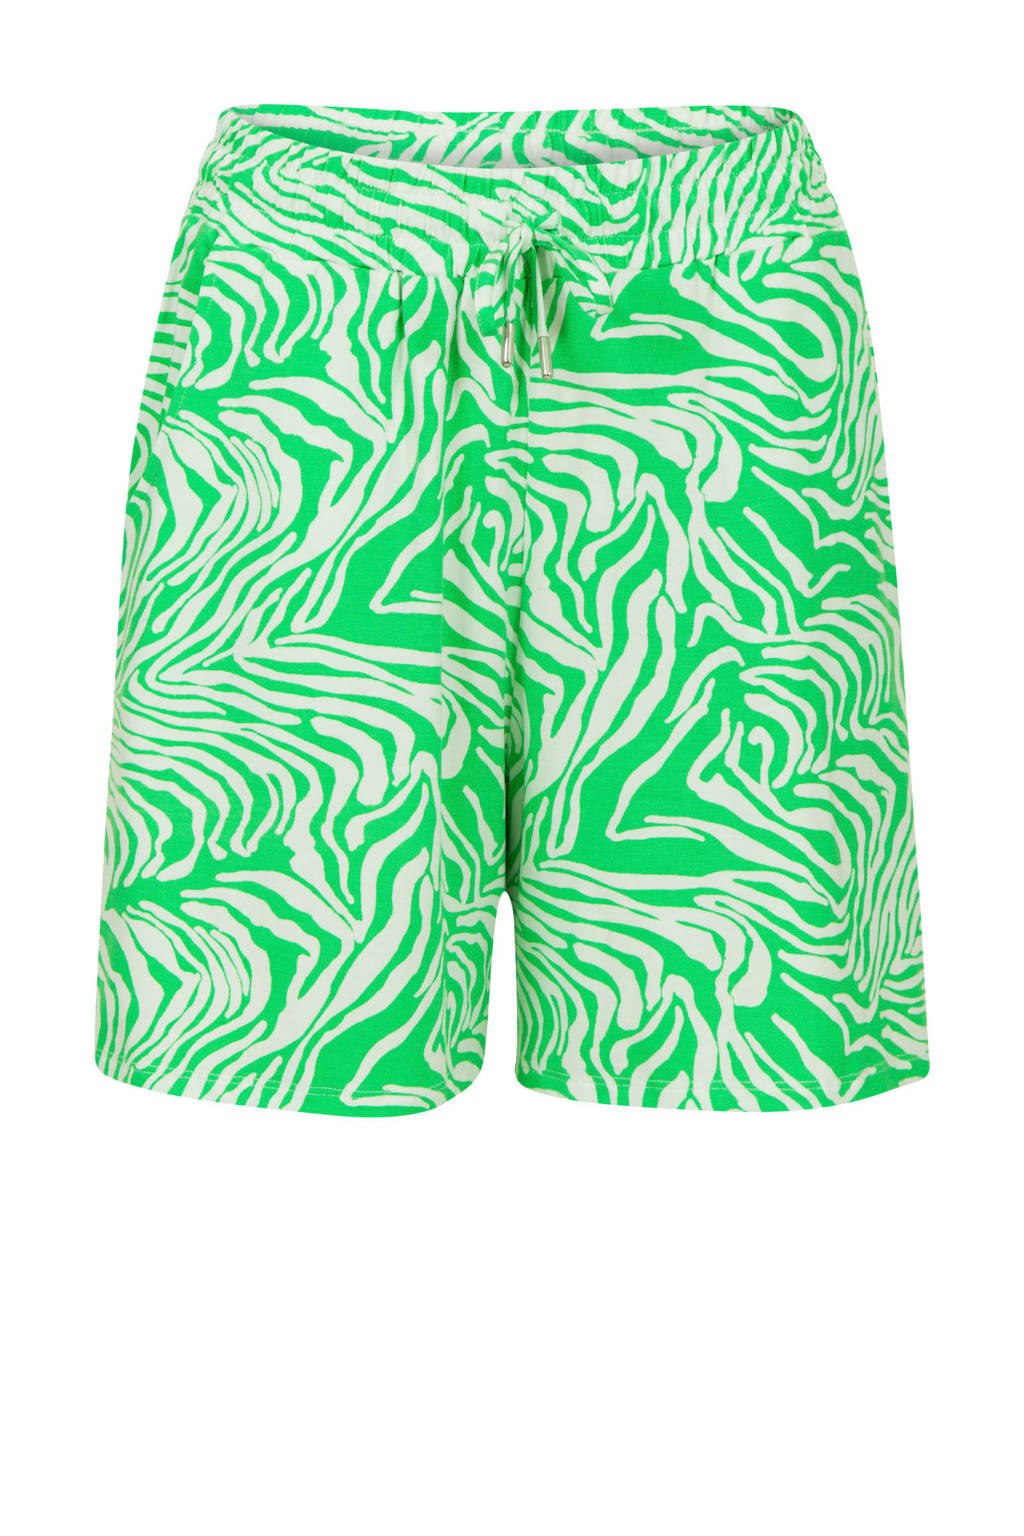 Miss Etam Regulier loose fit bermuda met all over print groen, Groen